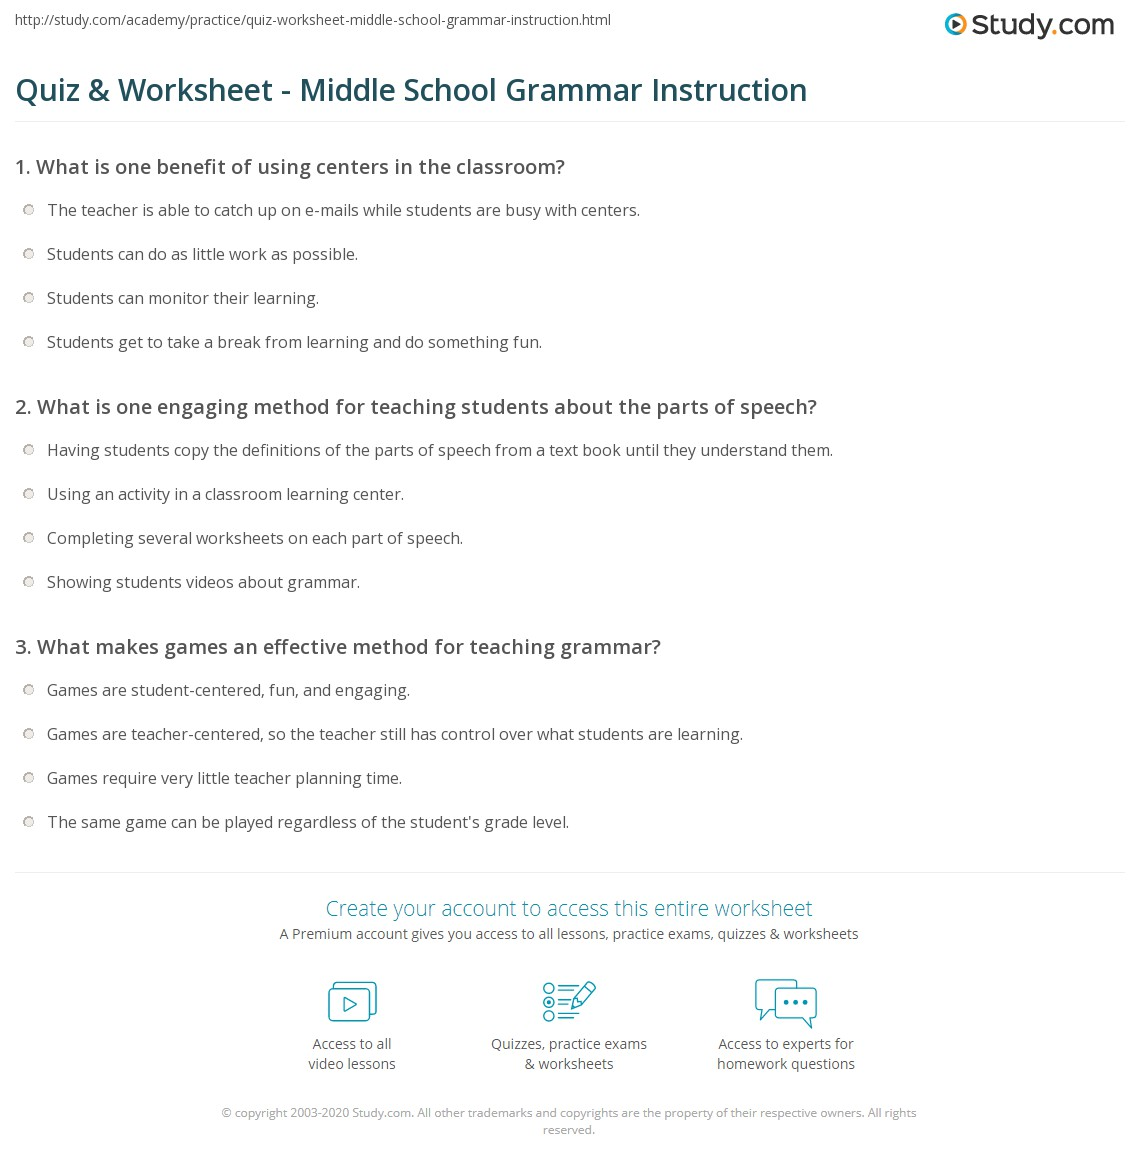 Printables Grammar Worksheets Middle School quiz worksheet middle school grammar instruction study com print teaching in worksheet